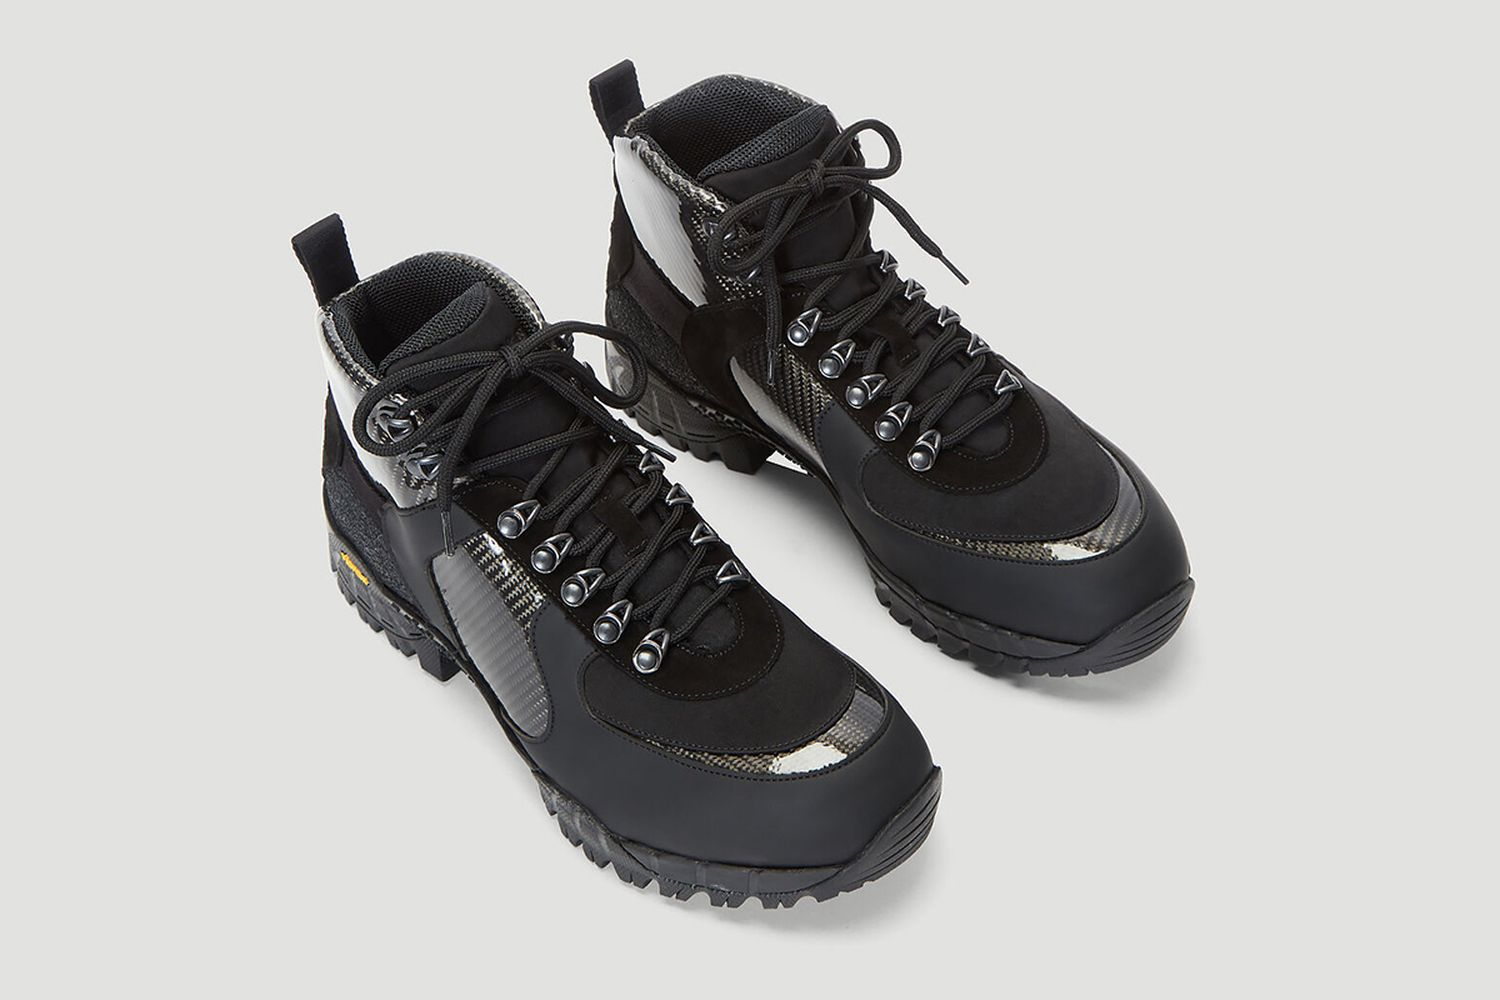 Vibram Sole Hiking Boots in Black